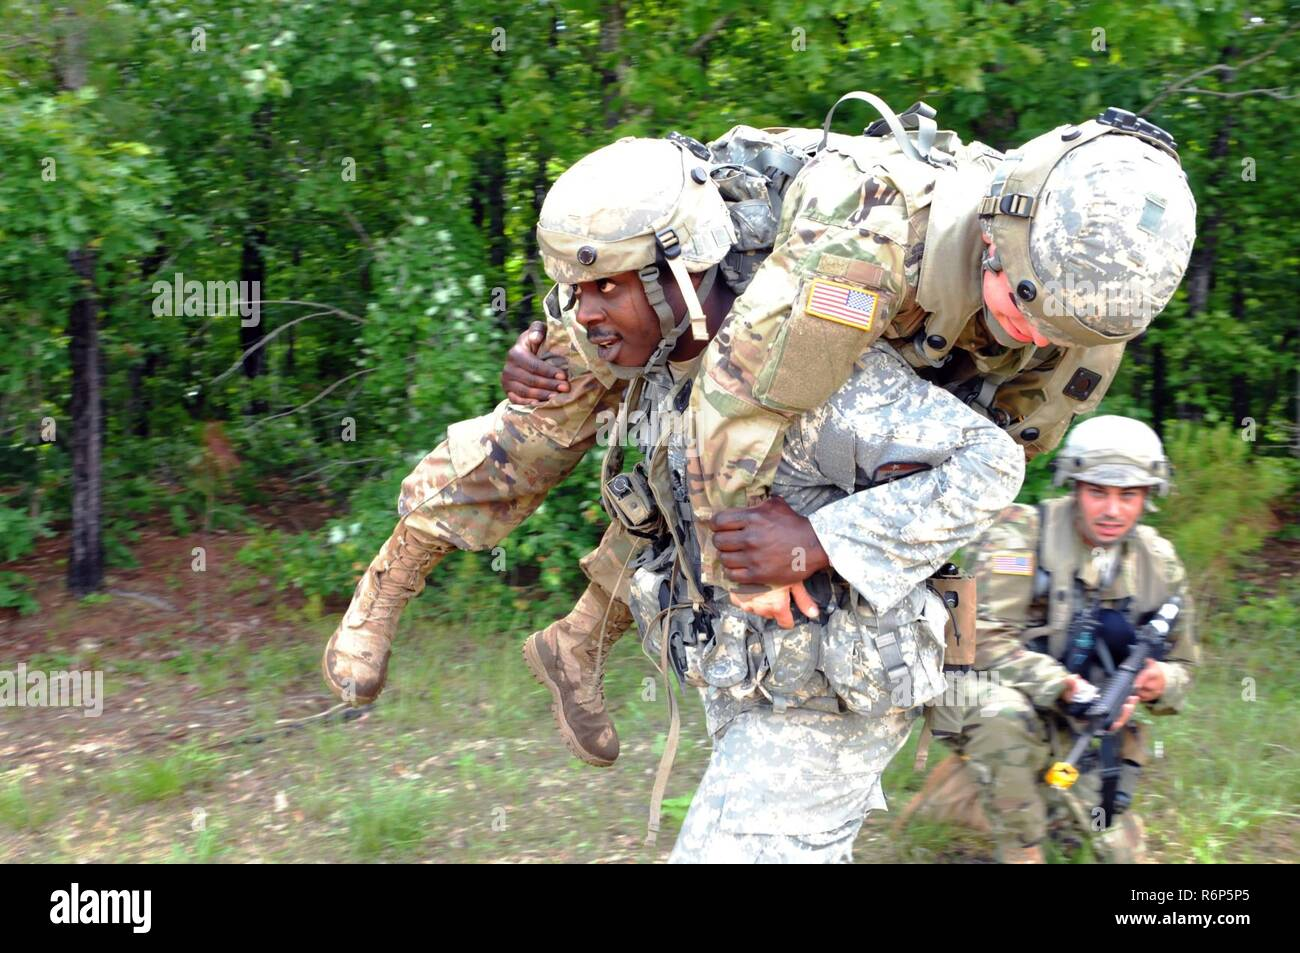 On 25 May 2017, during annual training at Fort Pickett Va., New Jersey Army National Guard Spc. Paul Daniels of the 250th Brigade Support Battalion fireman carries a fellow Soldier during a casualty evacuation exercise while Spc. Edgar Sepulveda provides overwatch. More than 3,000 New Jersey Army National Guard Soldiers - more than half of the combat strength of the force - is participating in the eXportable Combat Training Capability (XCTC) rotation from May 20 through June 9. (New Jersey Army National Guard - Stock Image